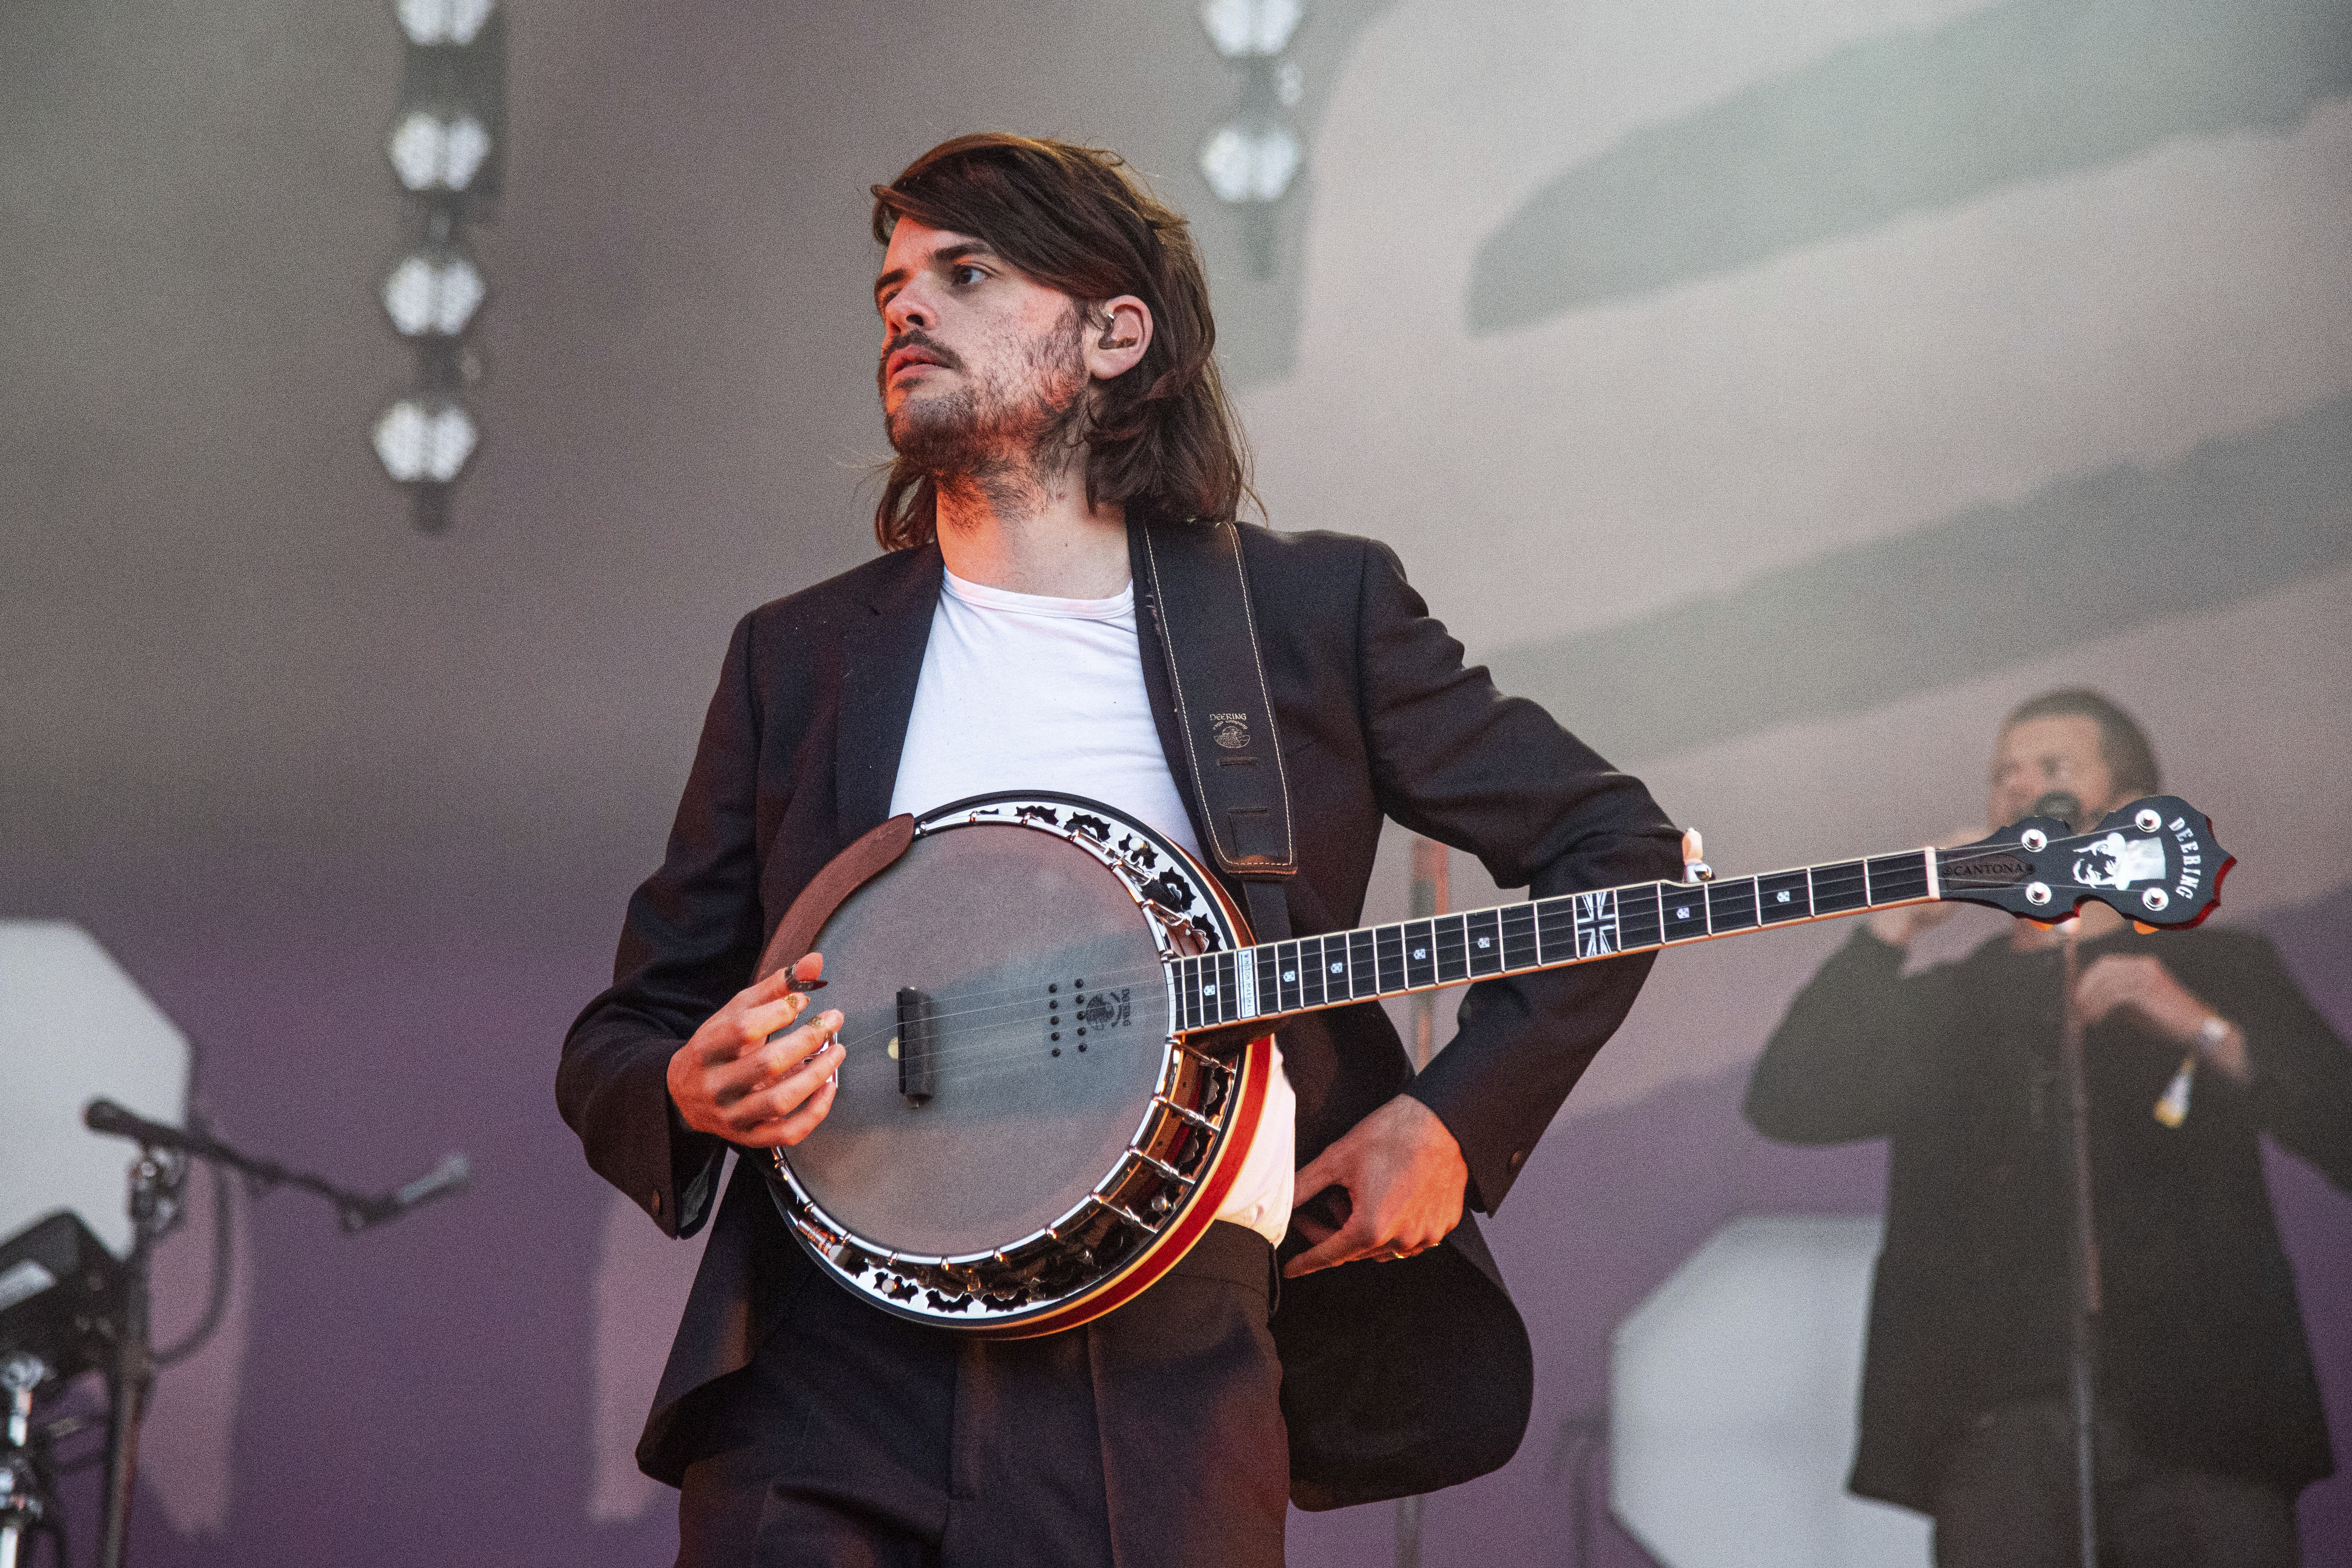 Winston Marshall of Mumford & Sons performs at the BottleRock Napa Valley Music Festival in 2019.